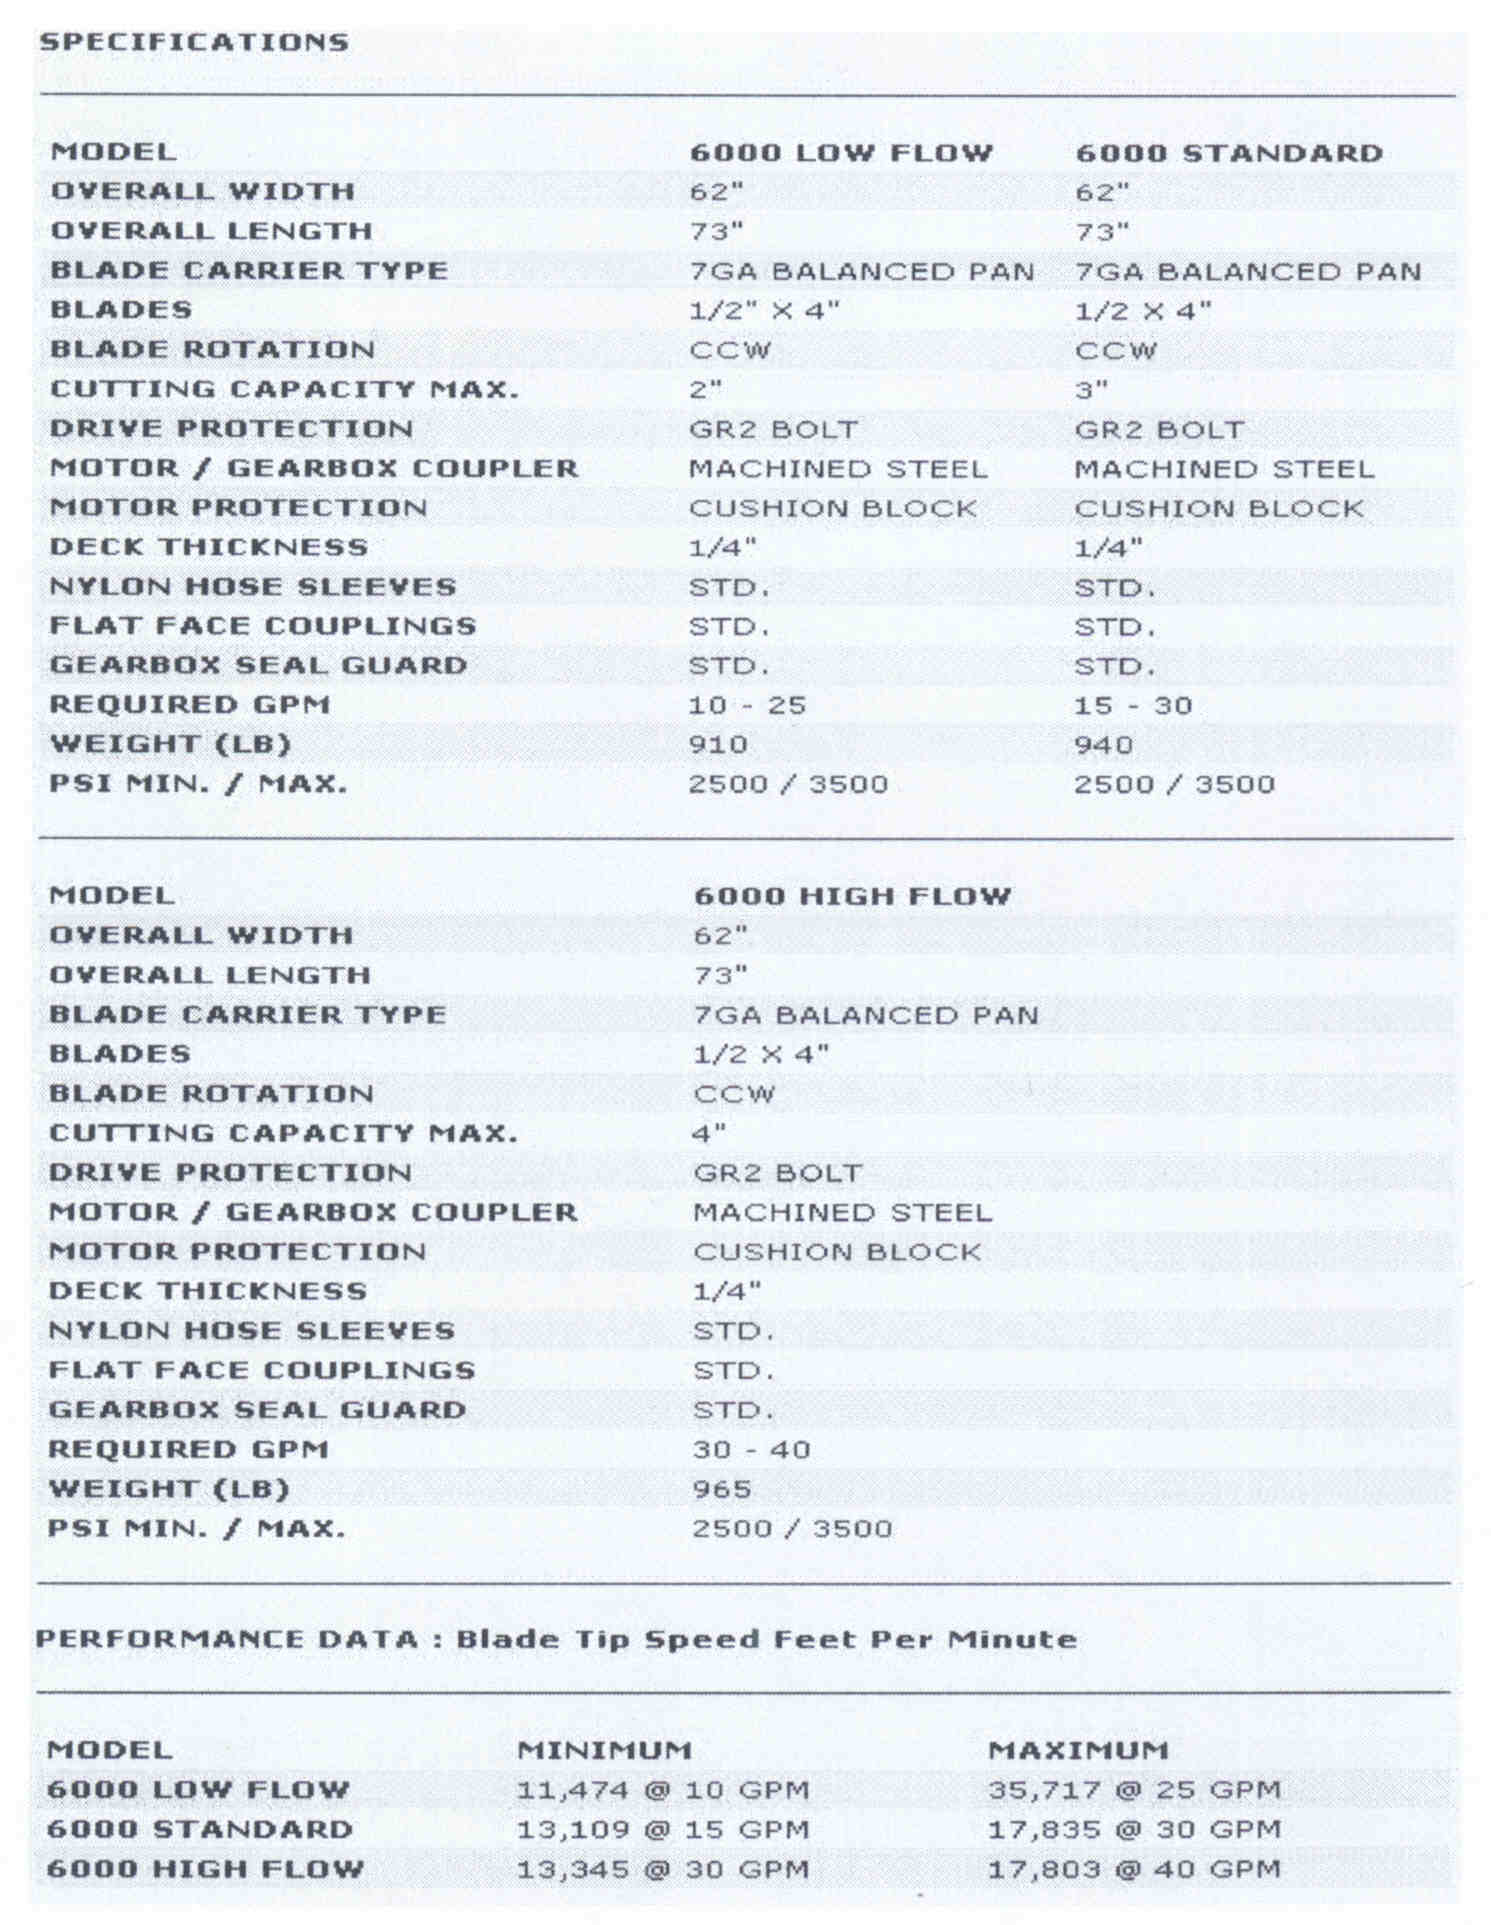 Model 6000 Specifications